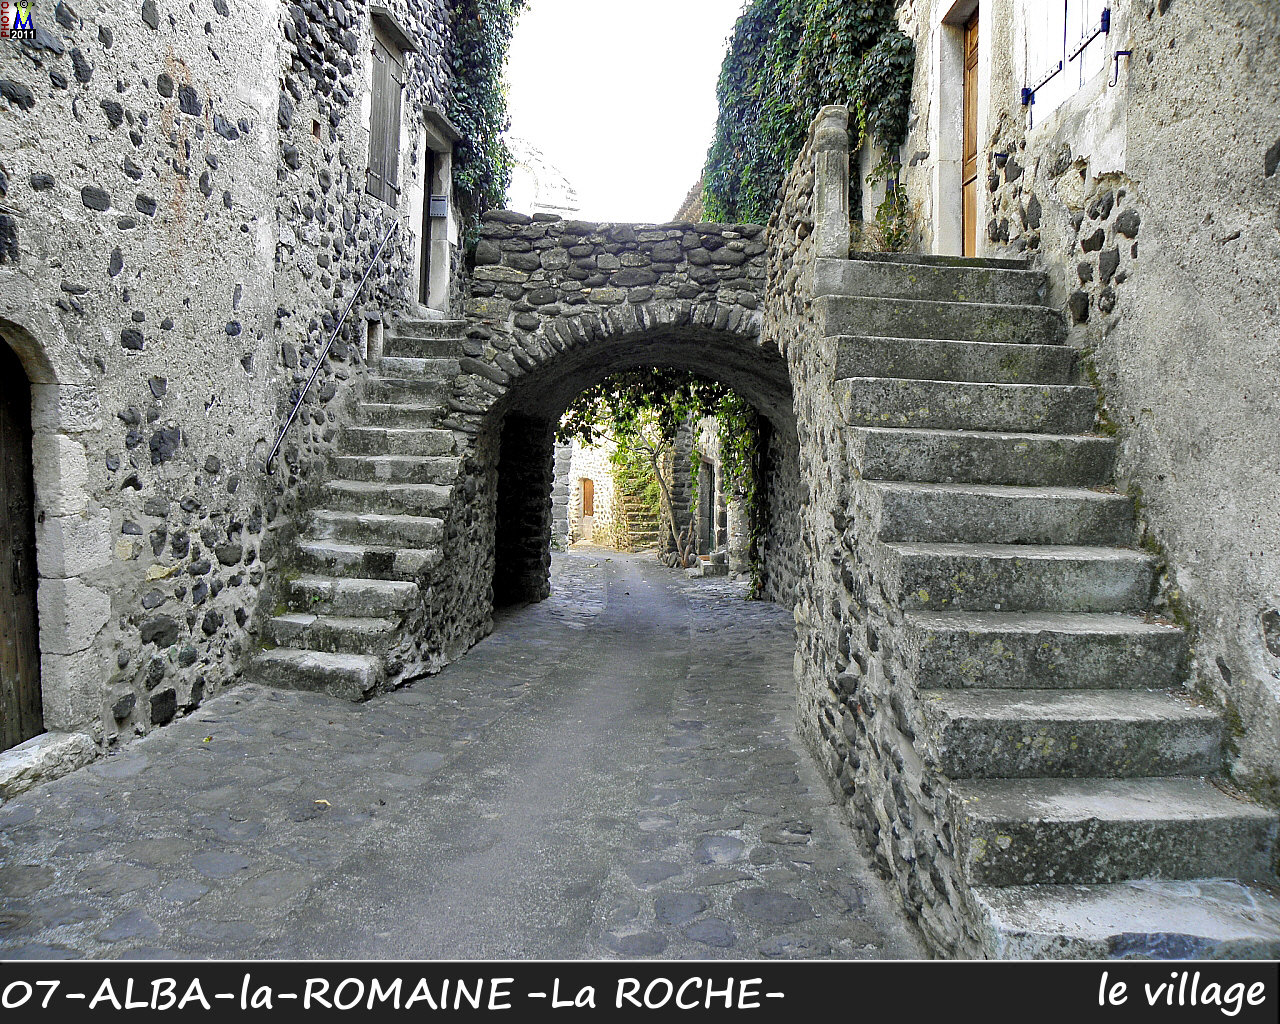 07ALBA-ROMAINEzROCHE_village_100.jpg